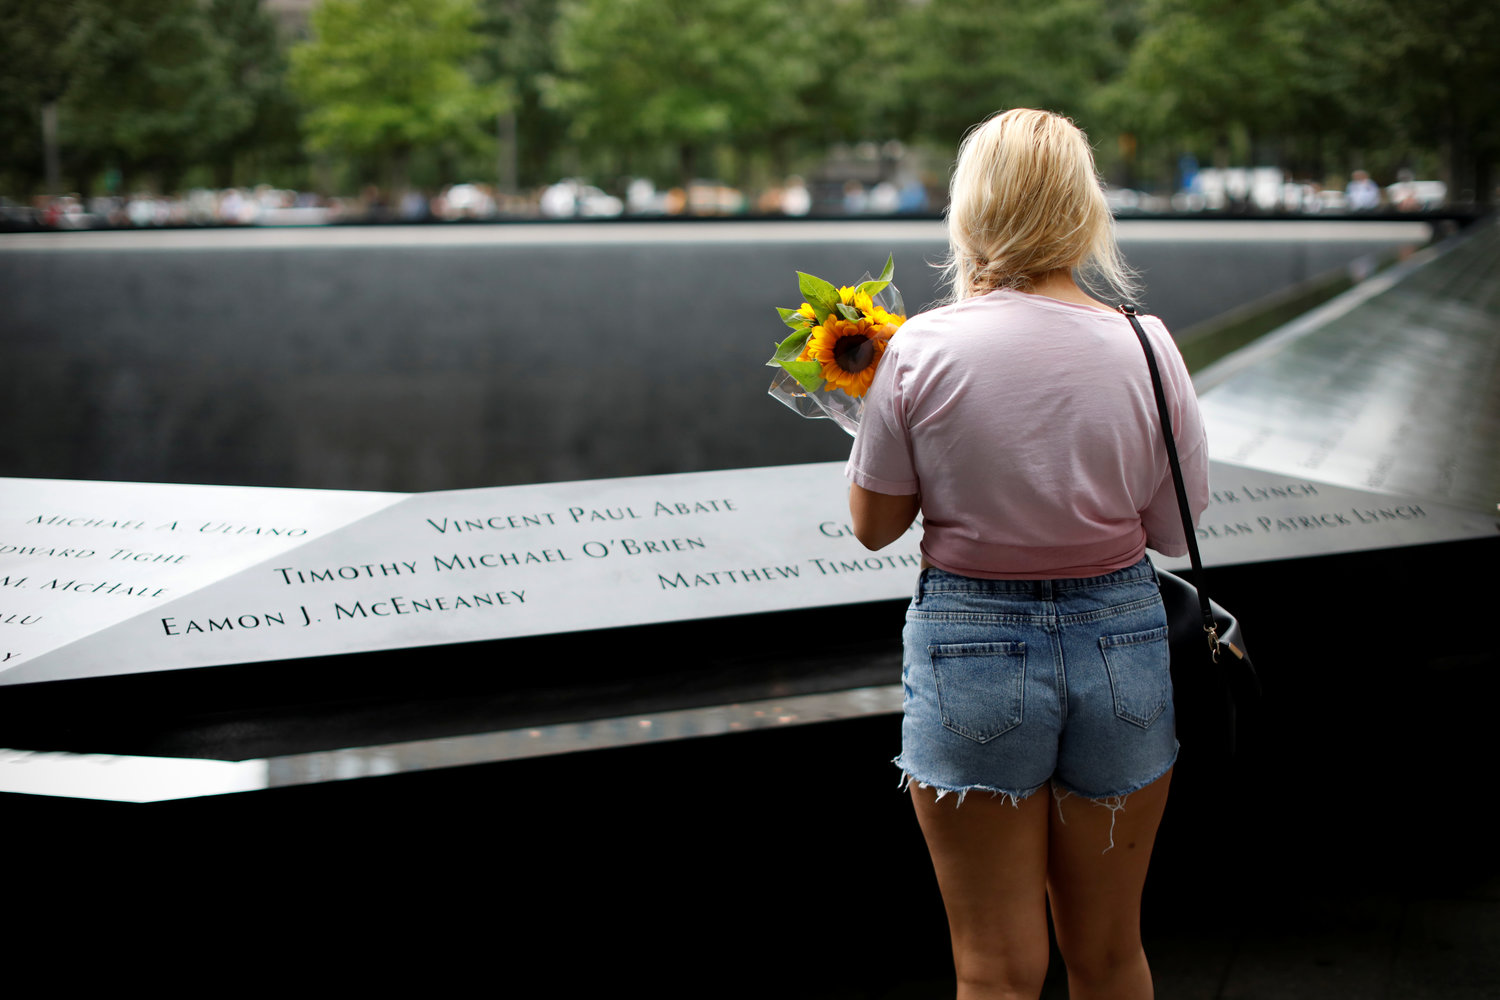 A woman holds a bouquet of flowers as she pauses at the edge of the north reflecting pool at the 9/11 Memorial and Museum in New York City Sept. 10, 2019, the eve of the 18th anniversary of the 9/11 terrorist attacks. Msgr. John Delendick, a longtime New York Fire Department chaplain, still recalls the 9/11 attacks vividly. That first year after the attacks, he said, he doesn't remember how many funerals and memorial Masses he celebrated.